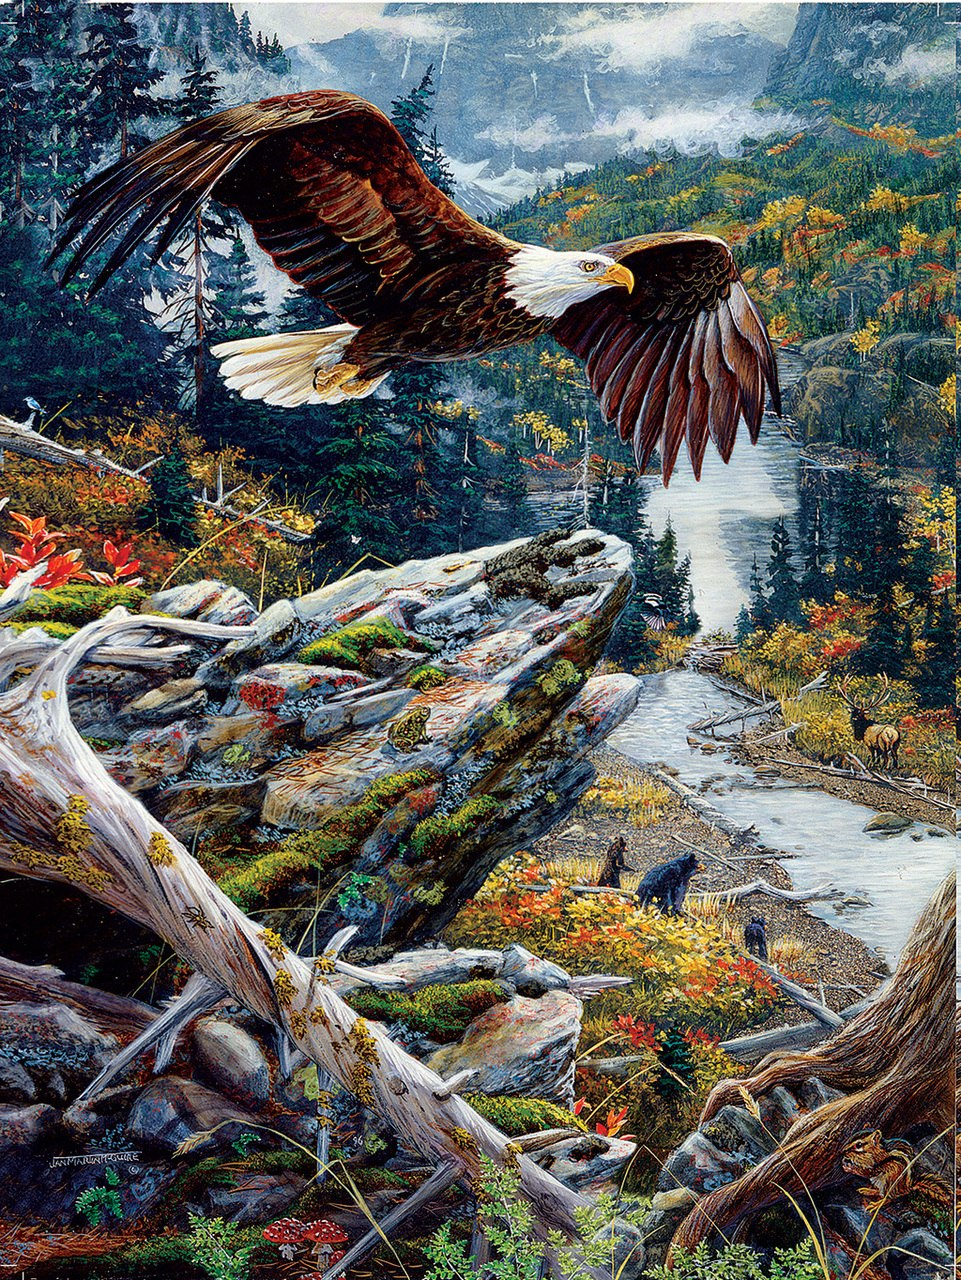 Mountain Flight - 1000pc Jigsaw Puzzle by Sunsout